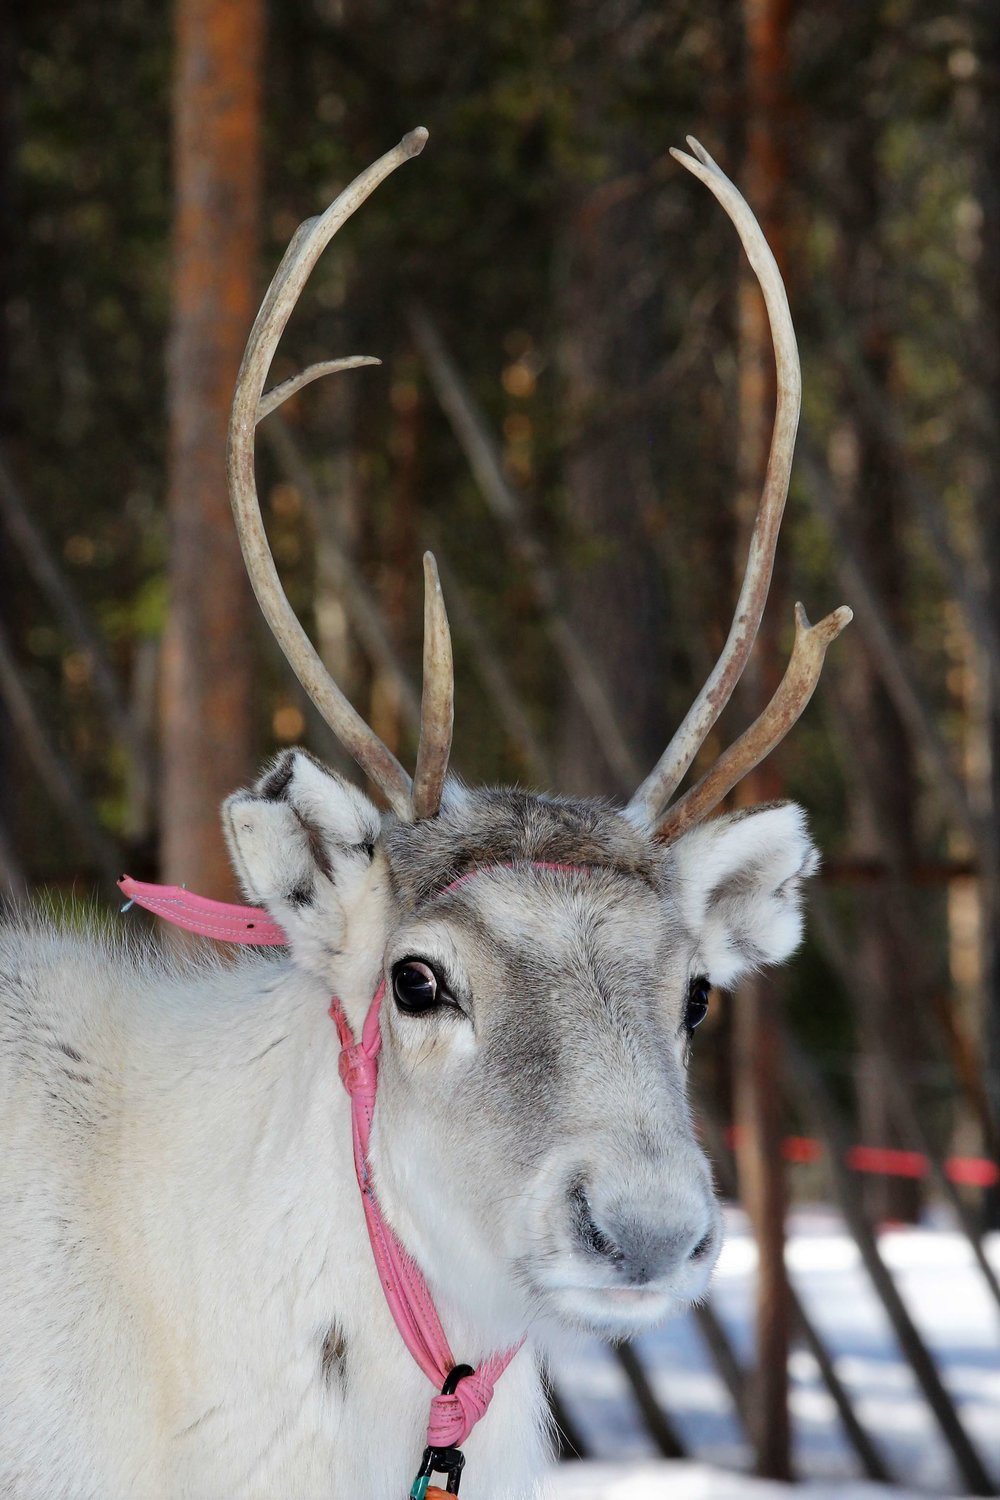 POROKELLO IN NUMBERS - LAUNCHED: 13 SEP 2017OPERATING AREA: reindeer herding area, 36% of the total area of FinlandPEOPLE (PRO DRIVERS) MAKING ALERTS: 1500, starting from 06/2016ANNUAL COST OF REINDEER CRASHES: vehicle repairs ~15 million euros + ~100,000 kilos of reindeer meatPOROKELLO SUPPORTERS: Maaseuturahasto and OPAWARDS: The Police traffic safety award 2017 & SKAL award 2017